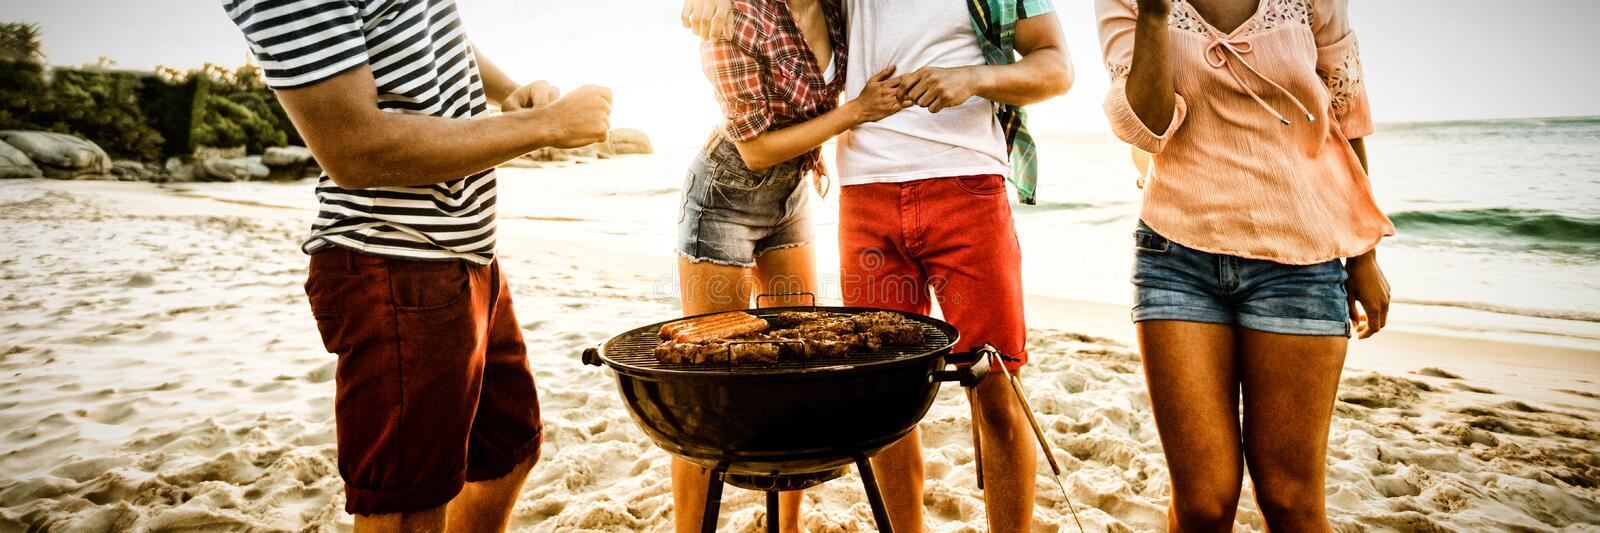 Amis ayant un barbecue image stock